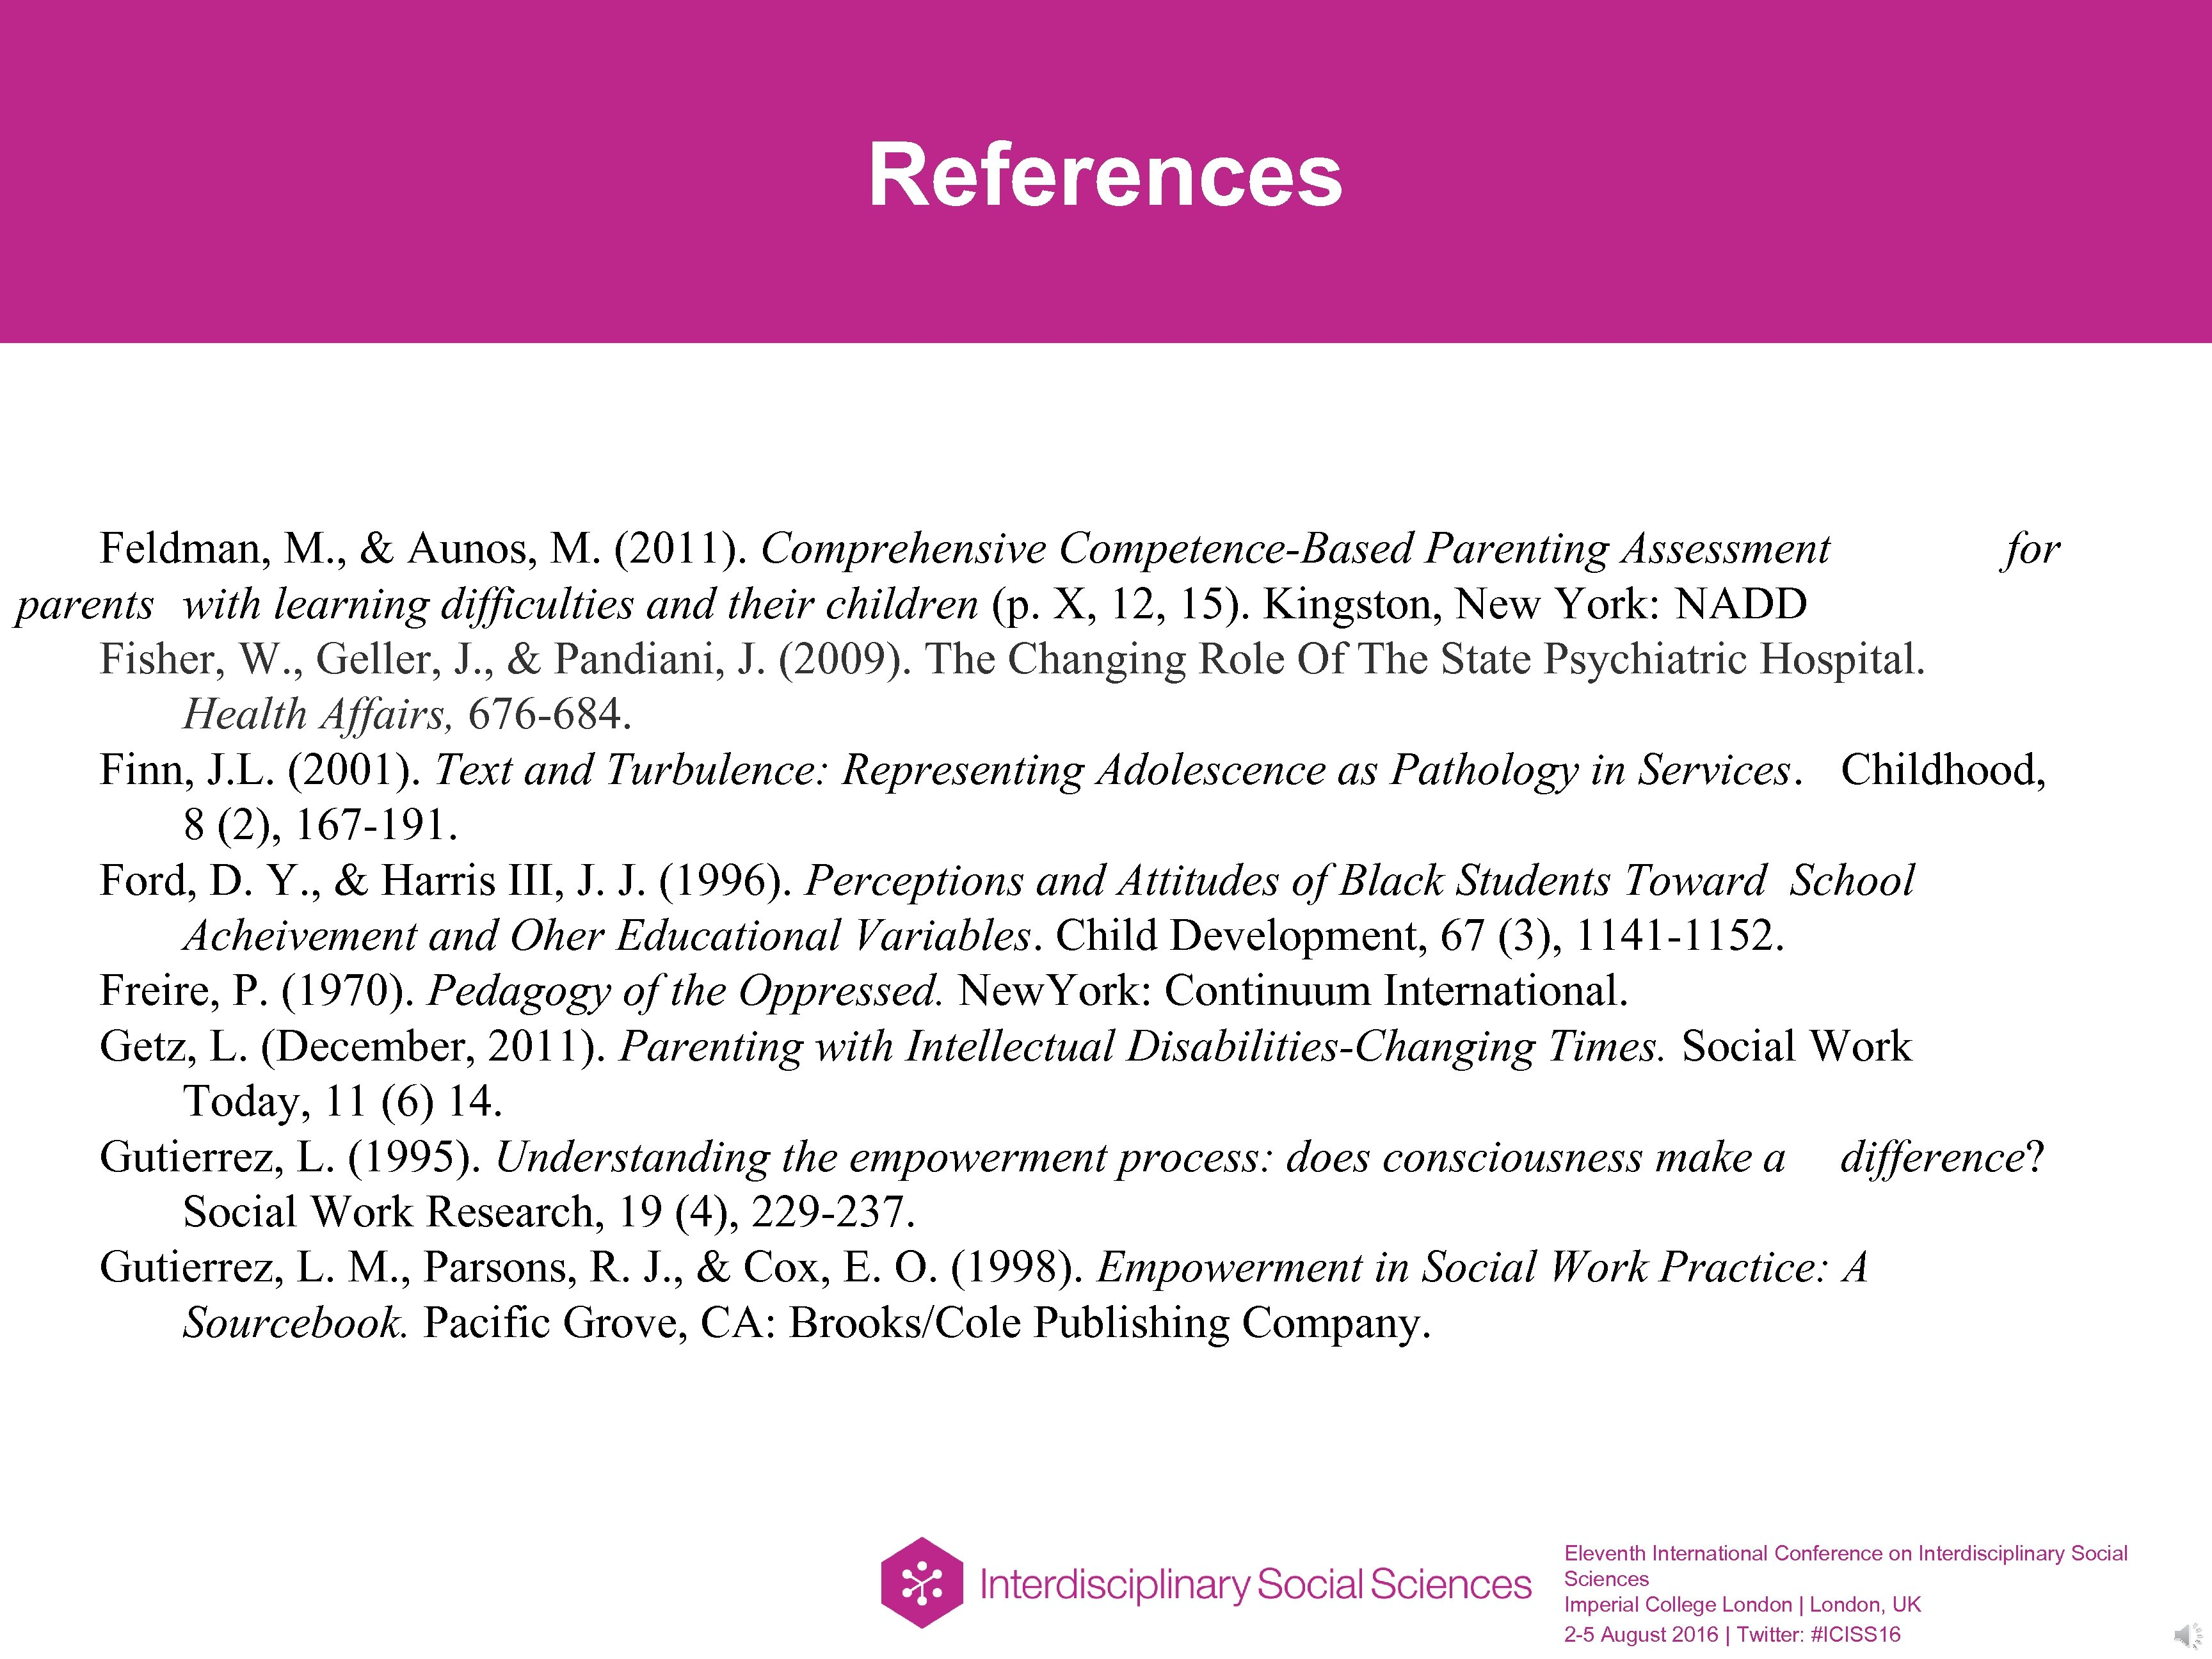 References Feldman, M. , & Aunos, M. (2011). Comprehensive Competence-Based Parenting Assessment for parents